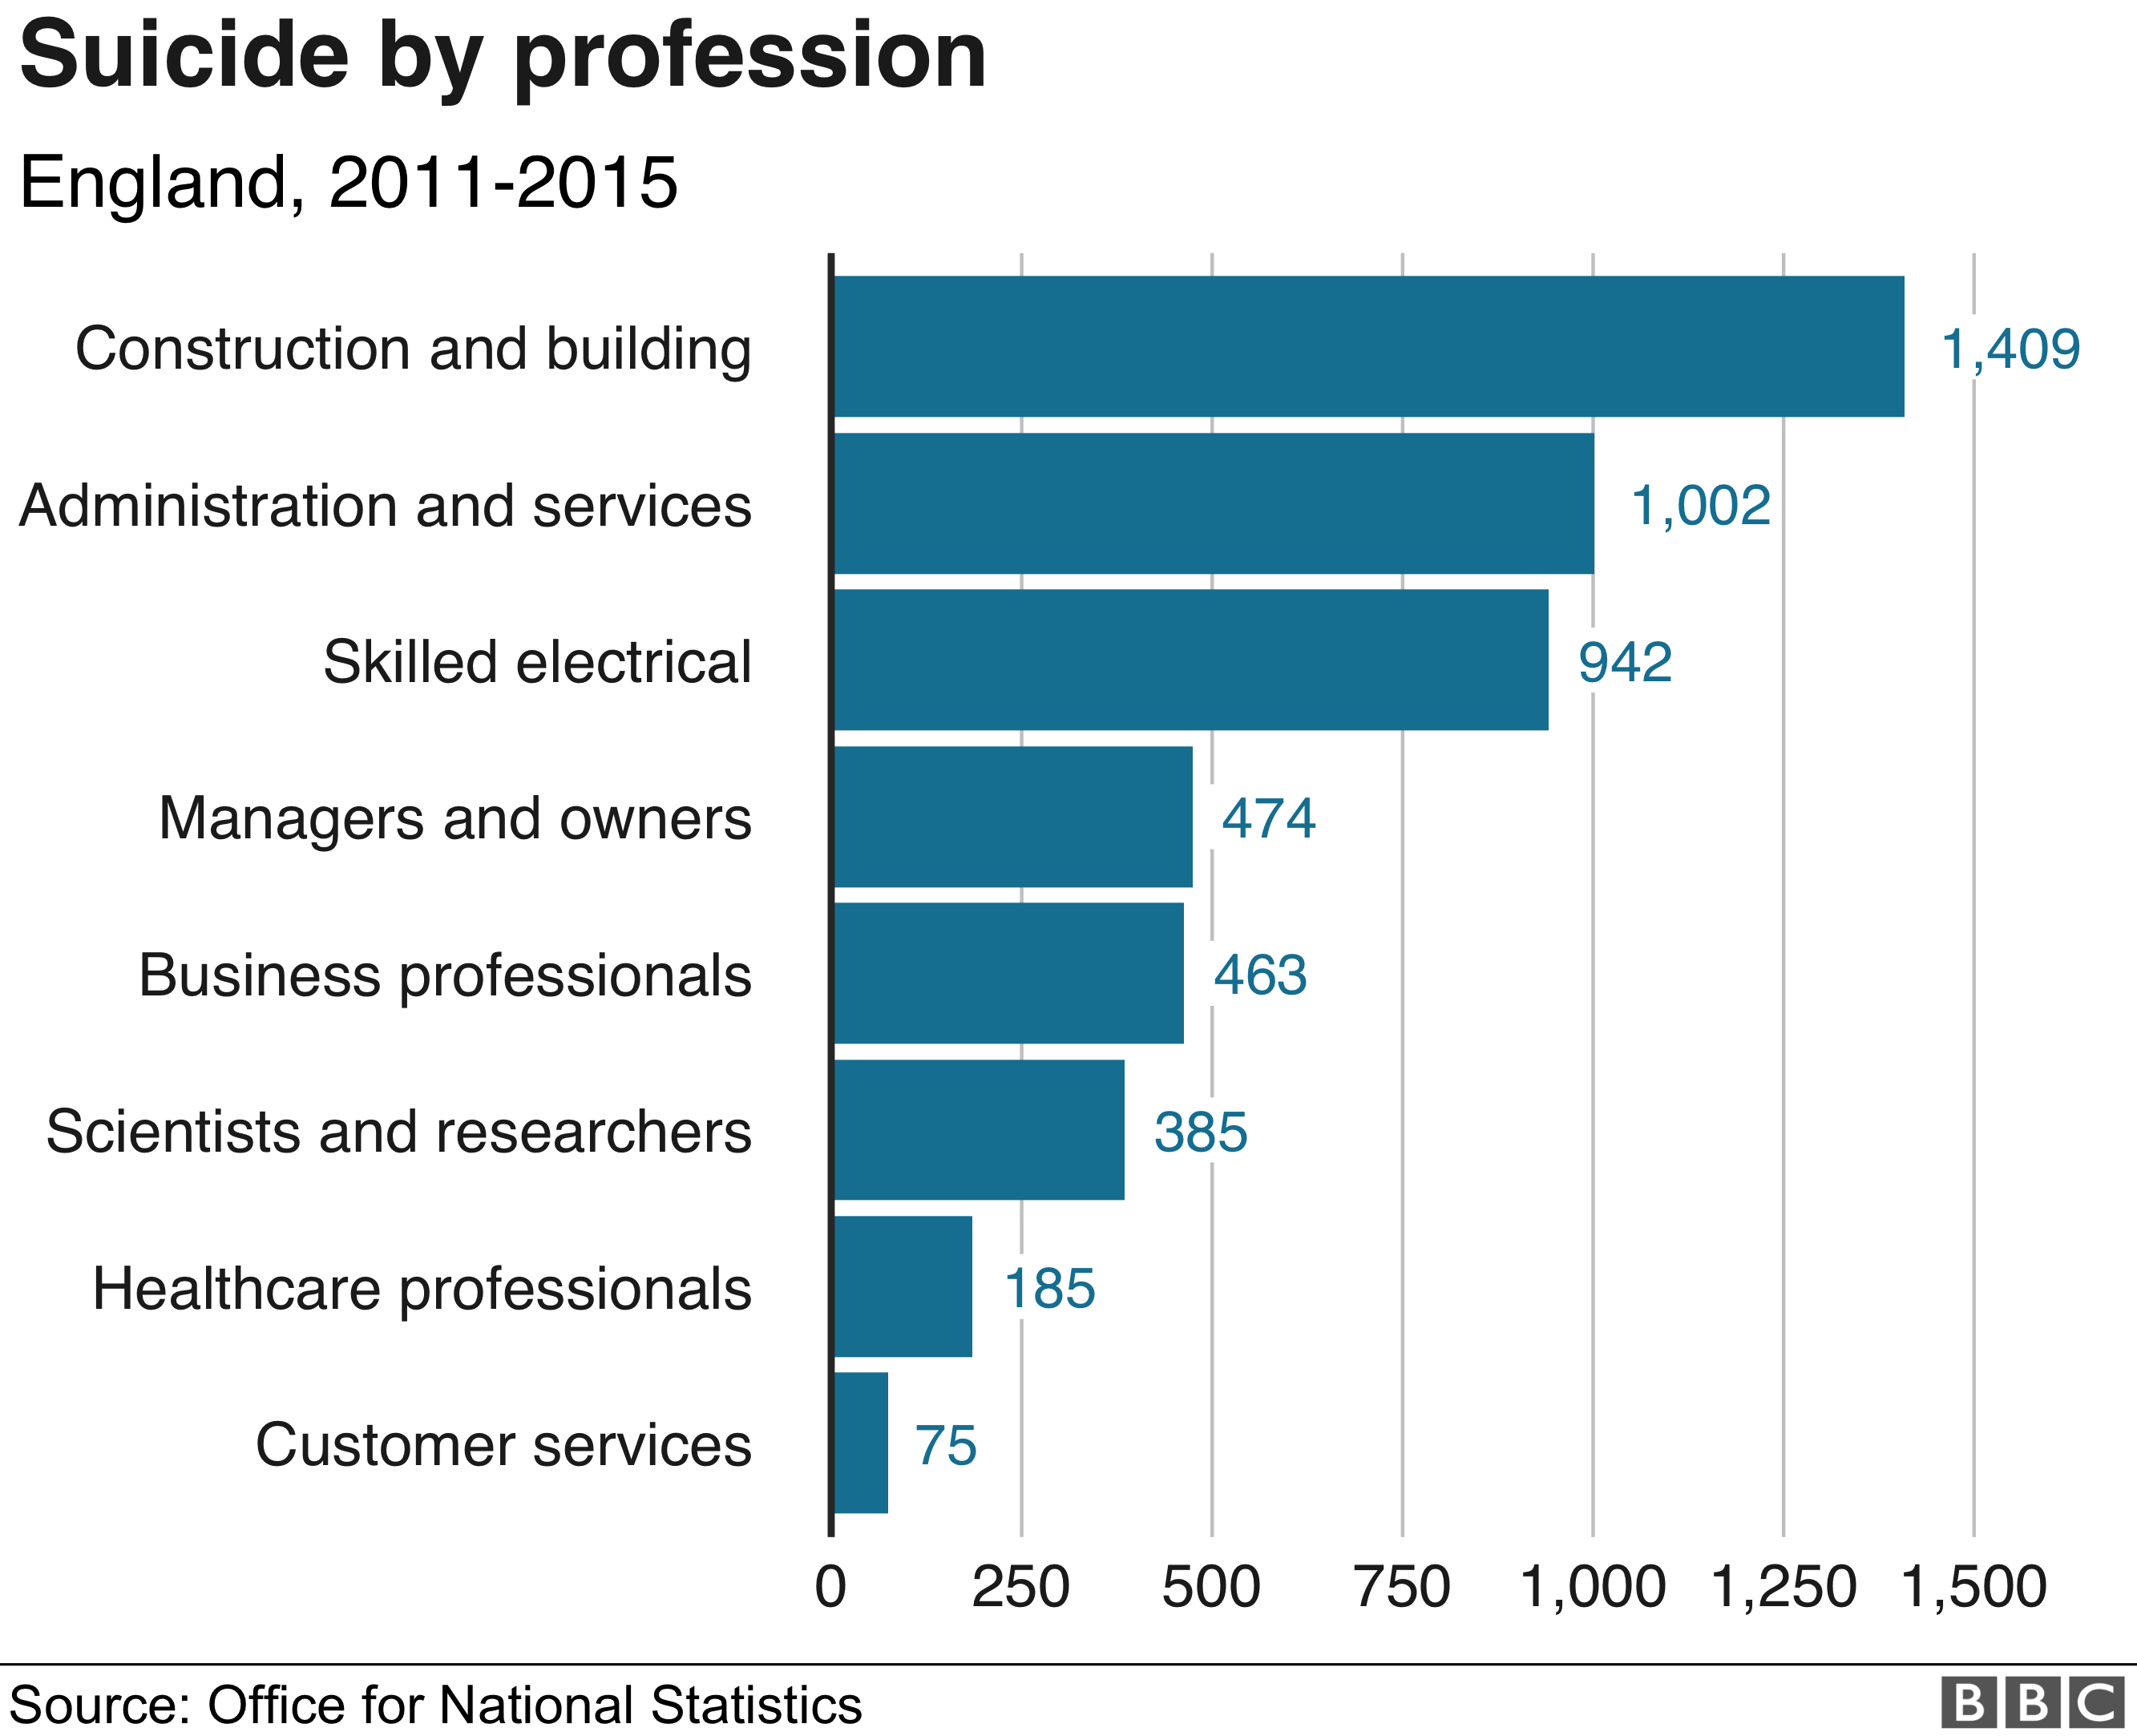 Chart on suicides by profession